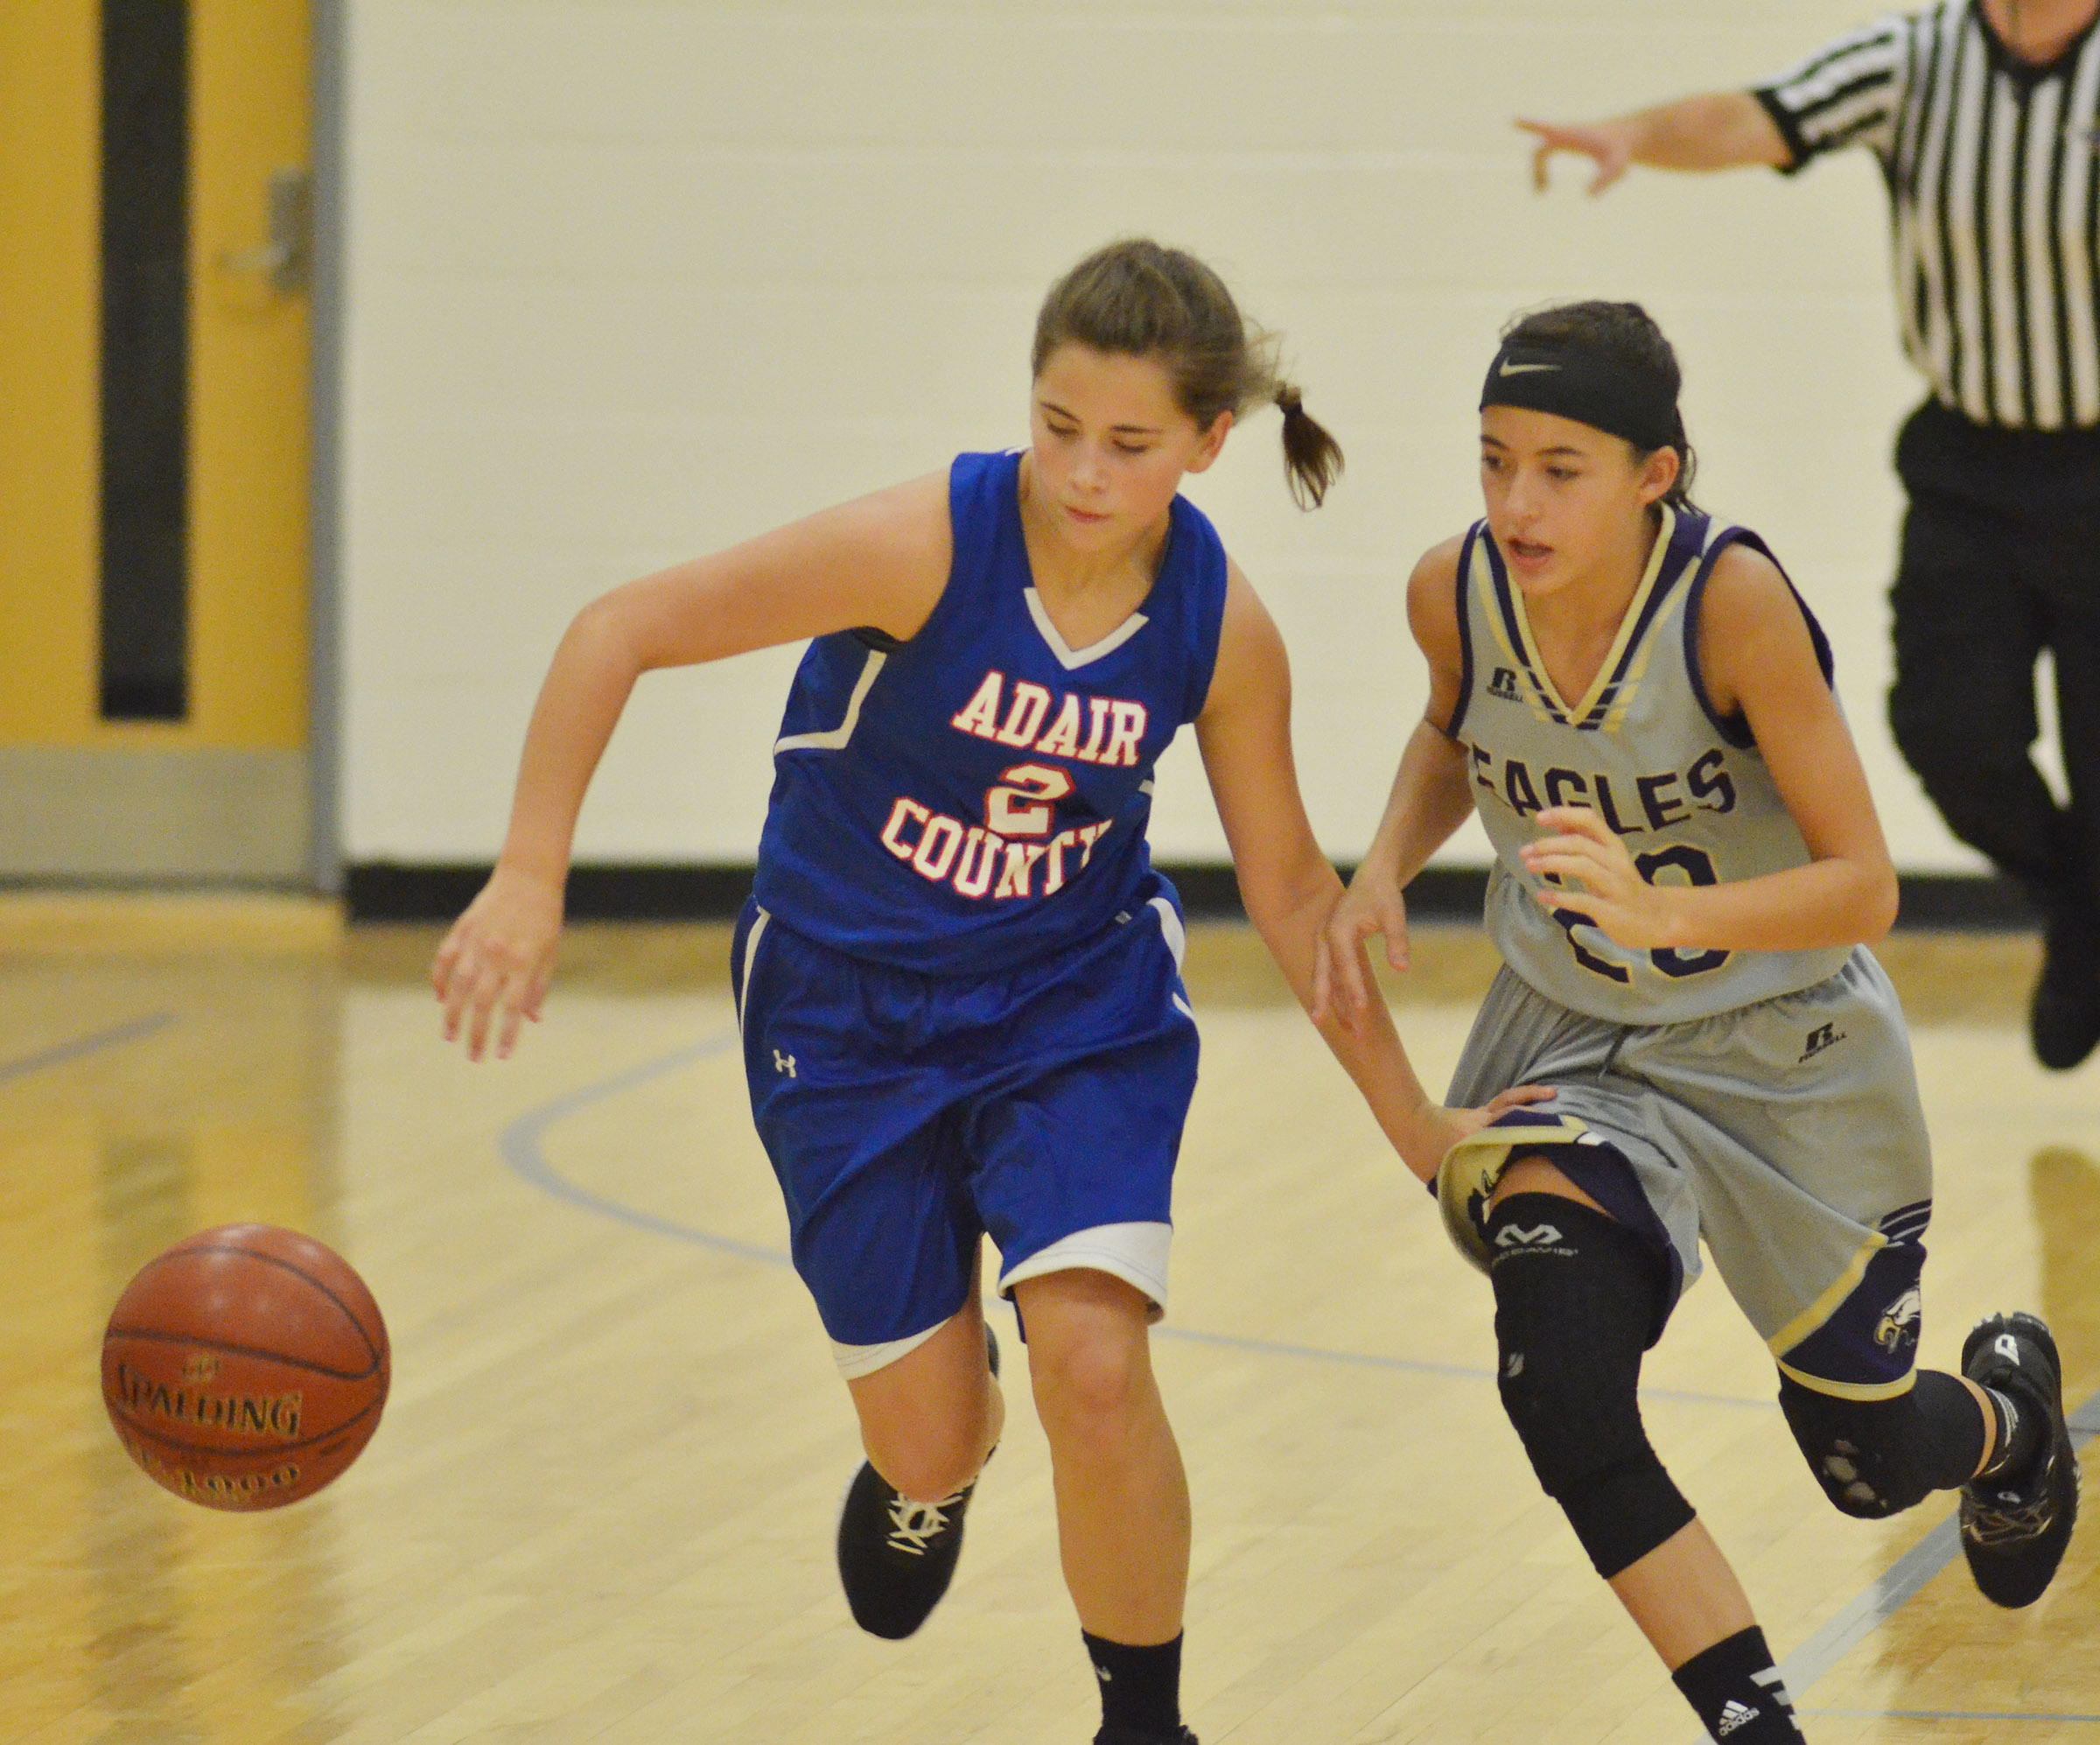 CMS eighth-grader Kaylyn Smith battles for the ball.